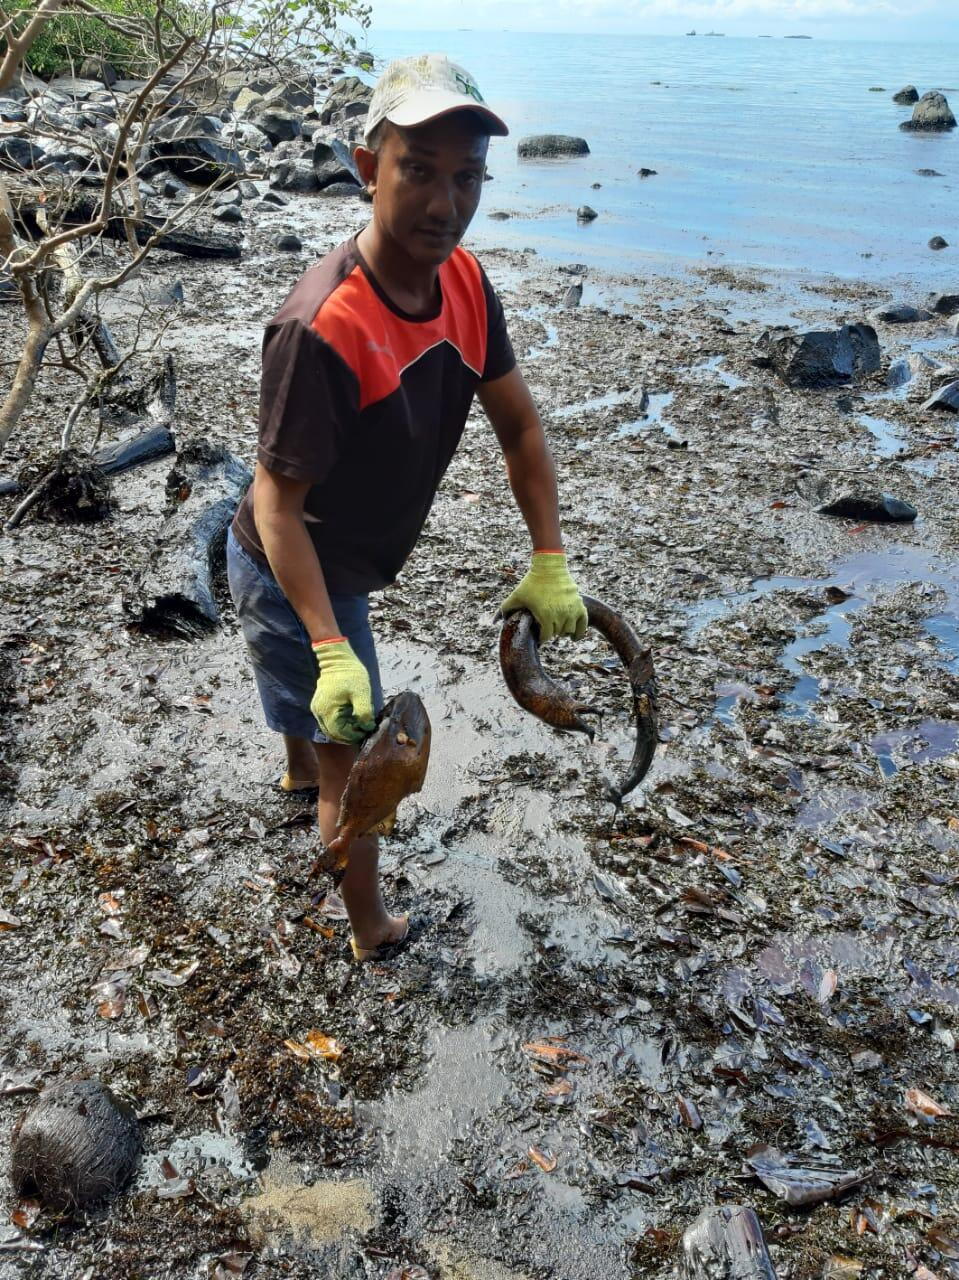 Fisherman Baretta Matombe found dead fish at Falaise Rouge following the oil spill in Mauritius. He fears it will be years before he will be able to fish again.